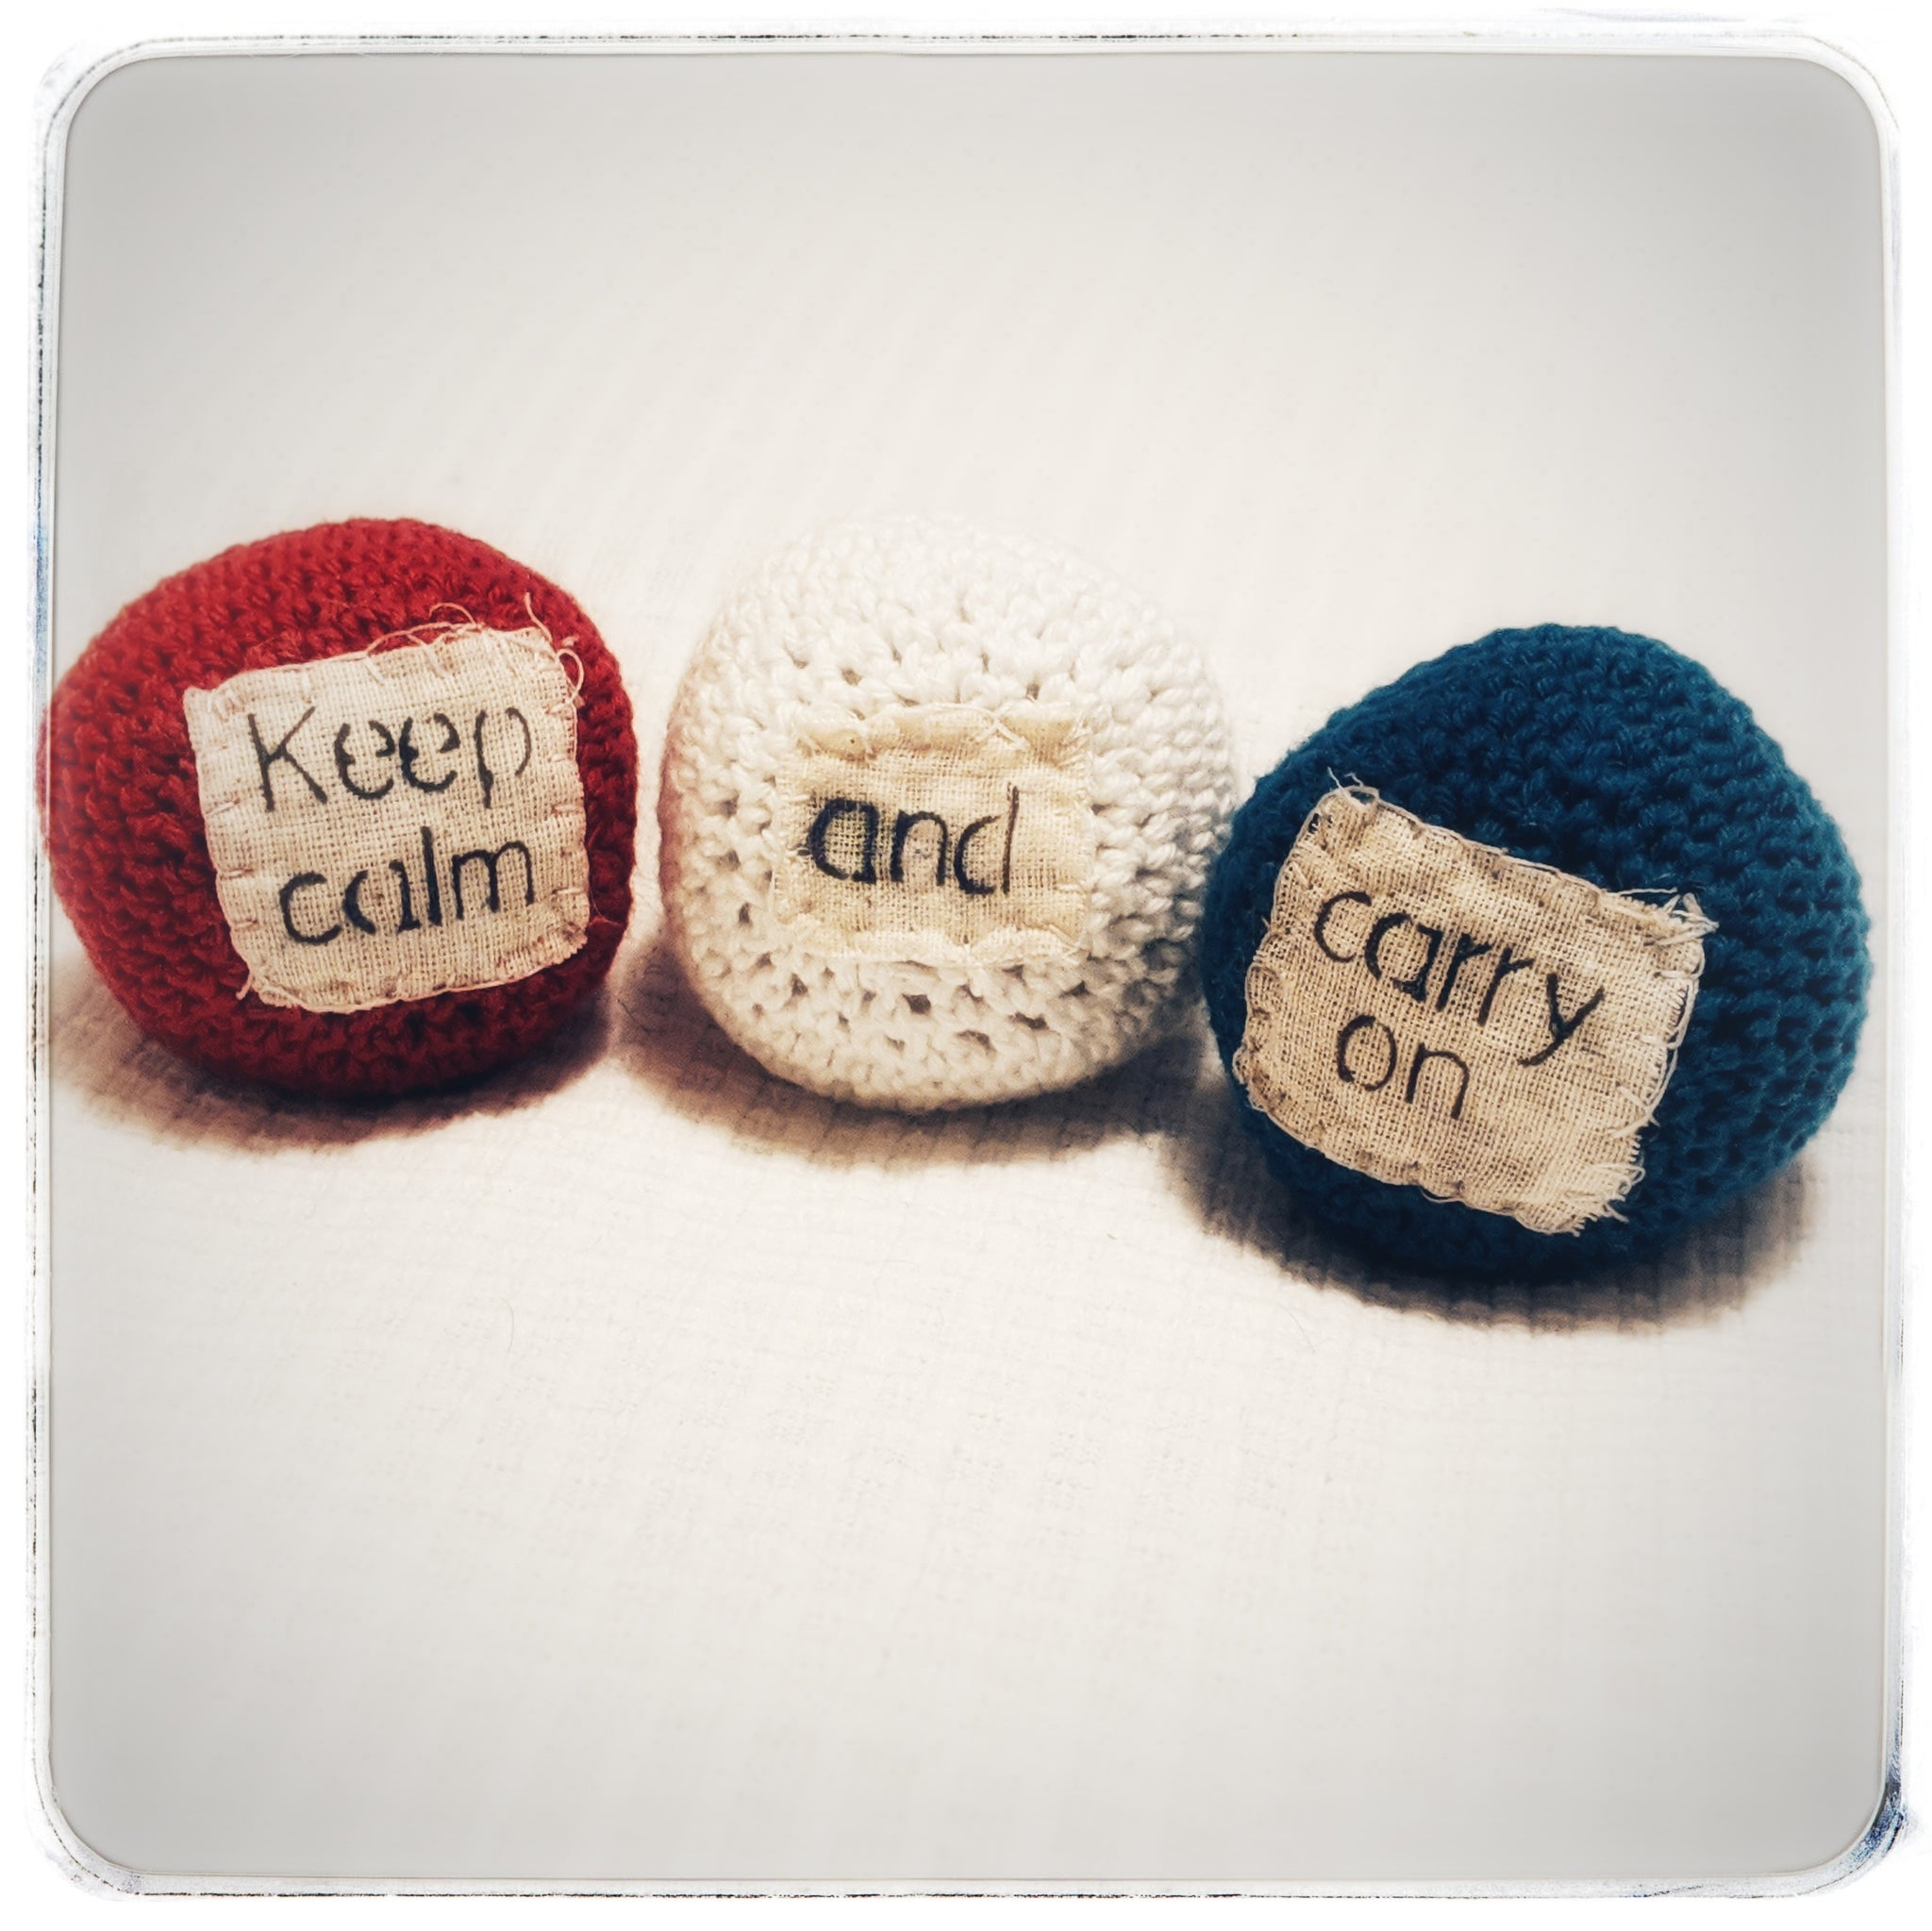 Crochet stress balls with quotes (or juggling balls!) in many different themes